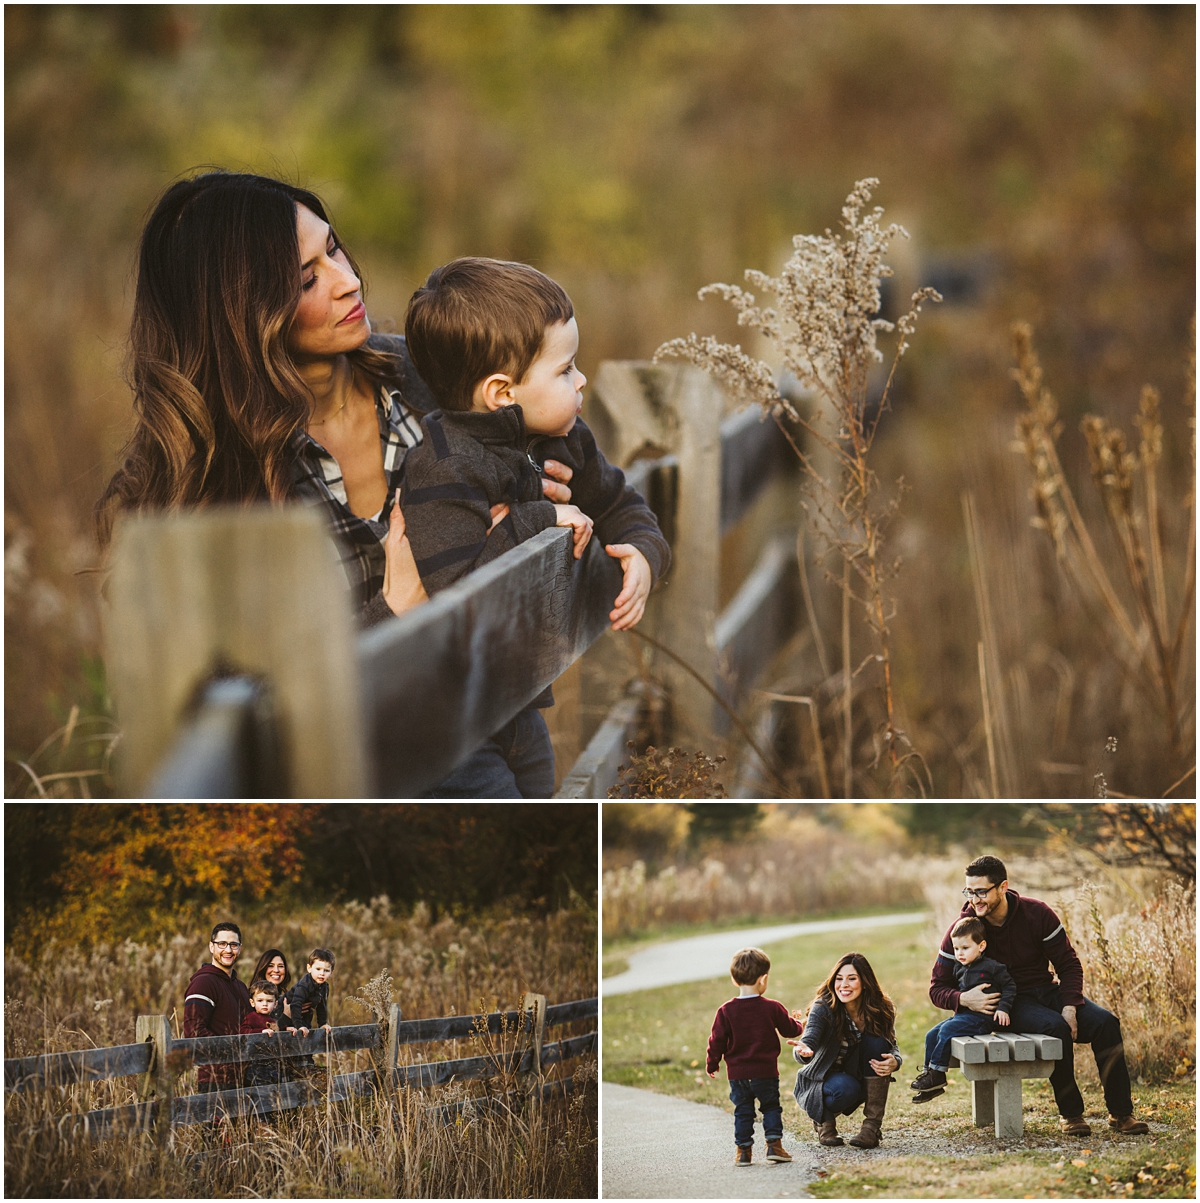 mom with toddler son in park near fence | cleveland, OH family photography